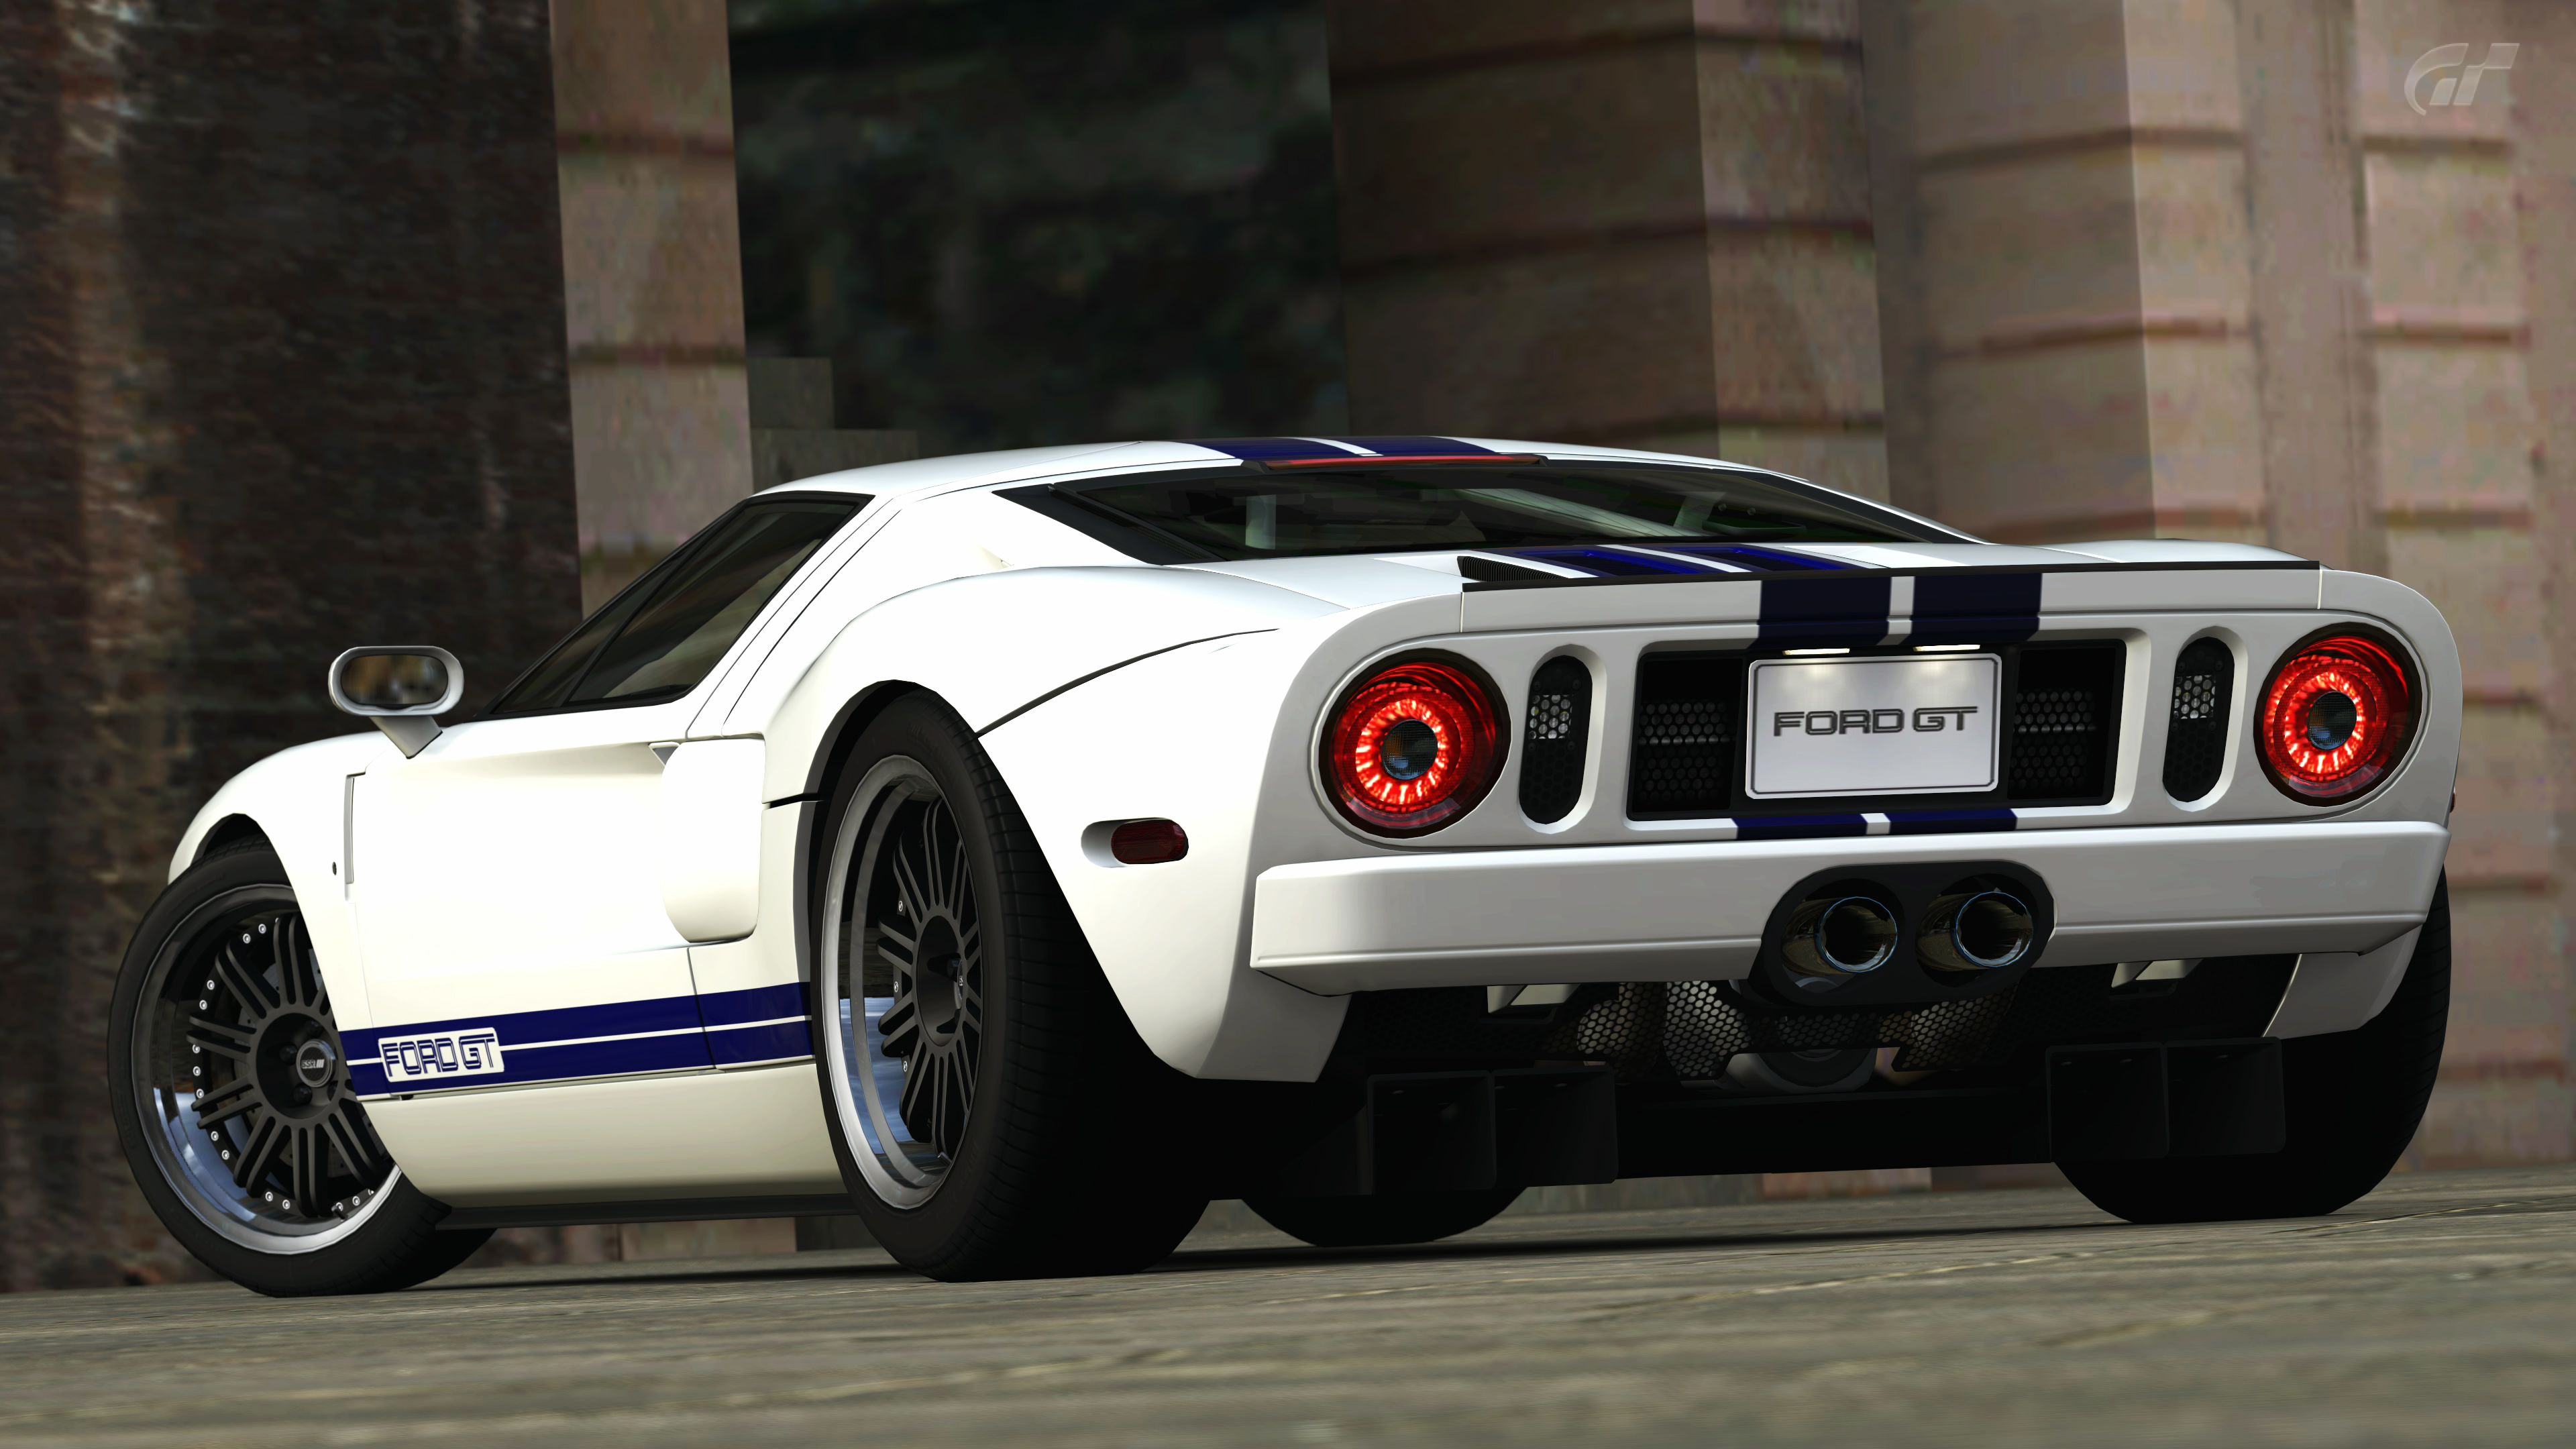 2006 Ford Gt By Vertualissimo On Deviantart Ford Gt Ford Gt 2005 Ford